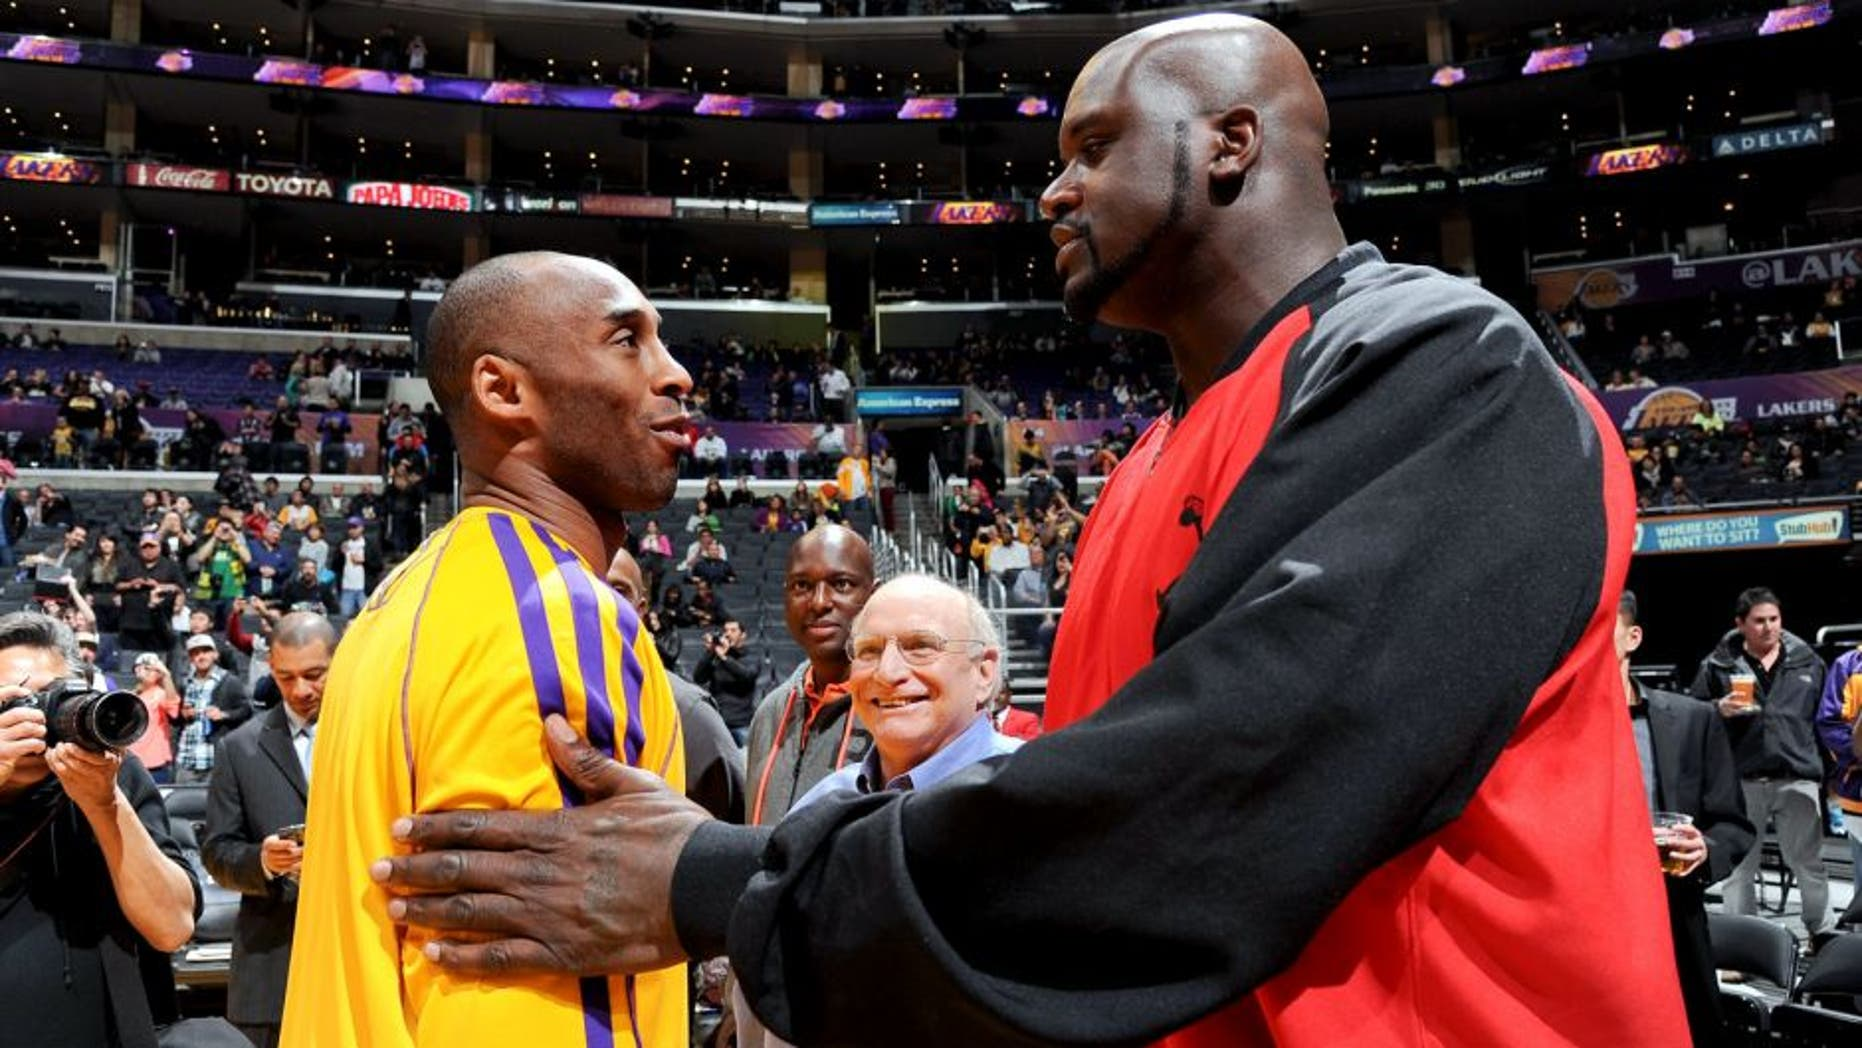 LOS ANGELES, CA - FEBRUARY 12: Former NBA player Shaquille O'Neal greets former teammate Kobe Bryant #24 of the Los Angeles Lakers before a game between the Lakers and the Phoenix Suns at Staples Center on February 12, 2013 in Los Angeles, California. NOTE TO USER: User expressly acknowledges and agrees that, by downloading and/or using this Photograph, user is consenting to the terms and conditions of the Getty Images License Agreement. Mandatory Copyright Notice: Copyright 2013 NBAE (Photo by Andrew D. Bernstein/NBAE via Getty Images)